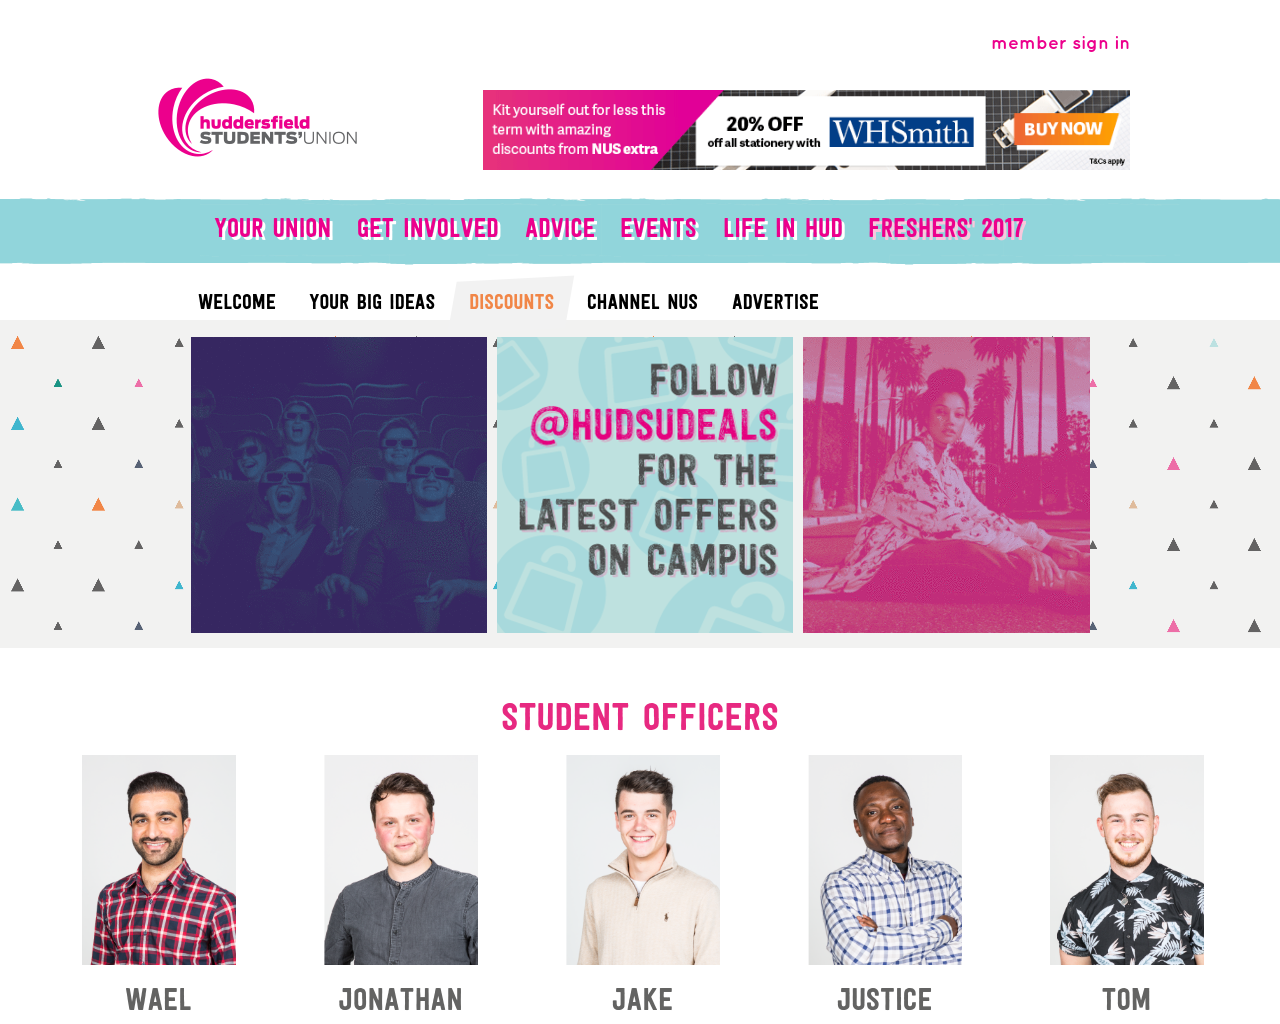 Huddersfield-Student's-Union-Advertising-Reviews-Pricing